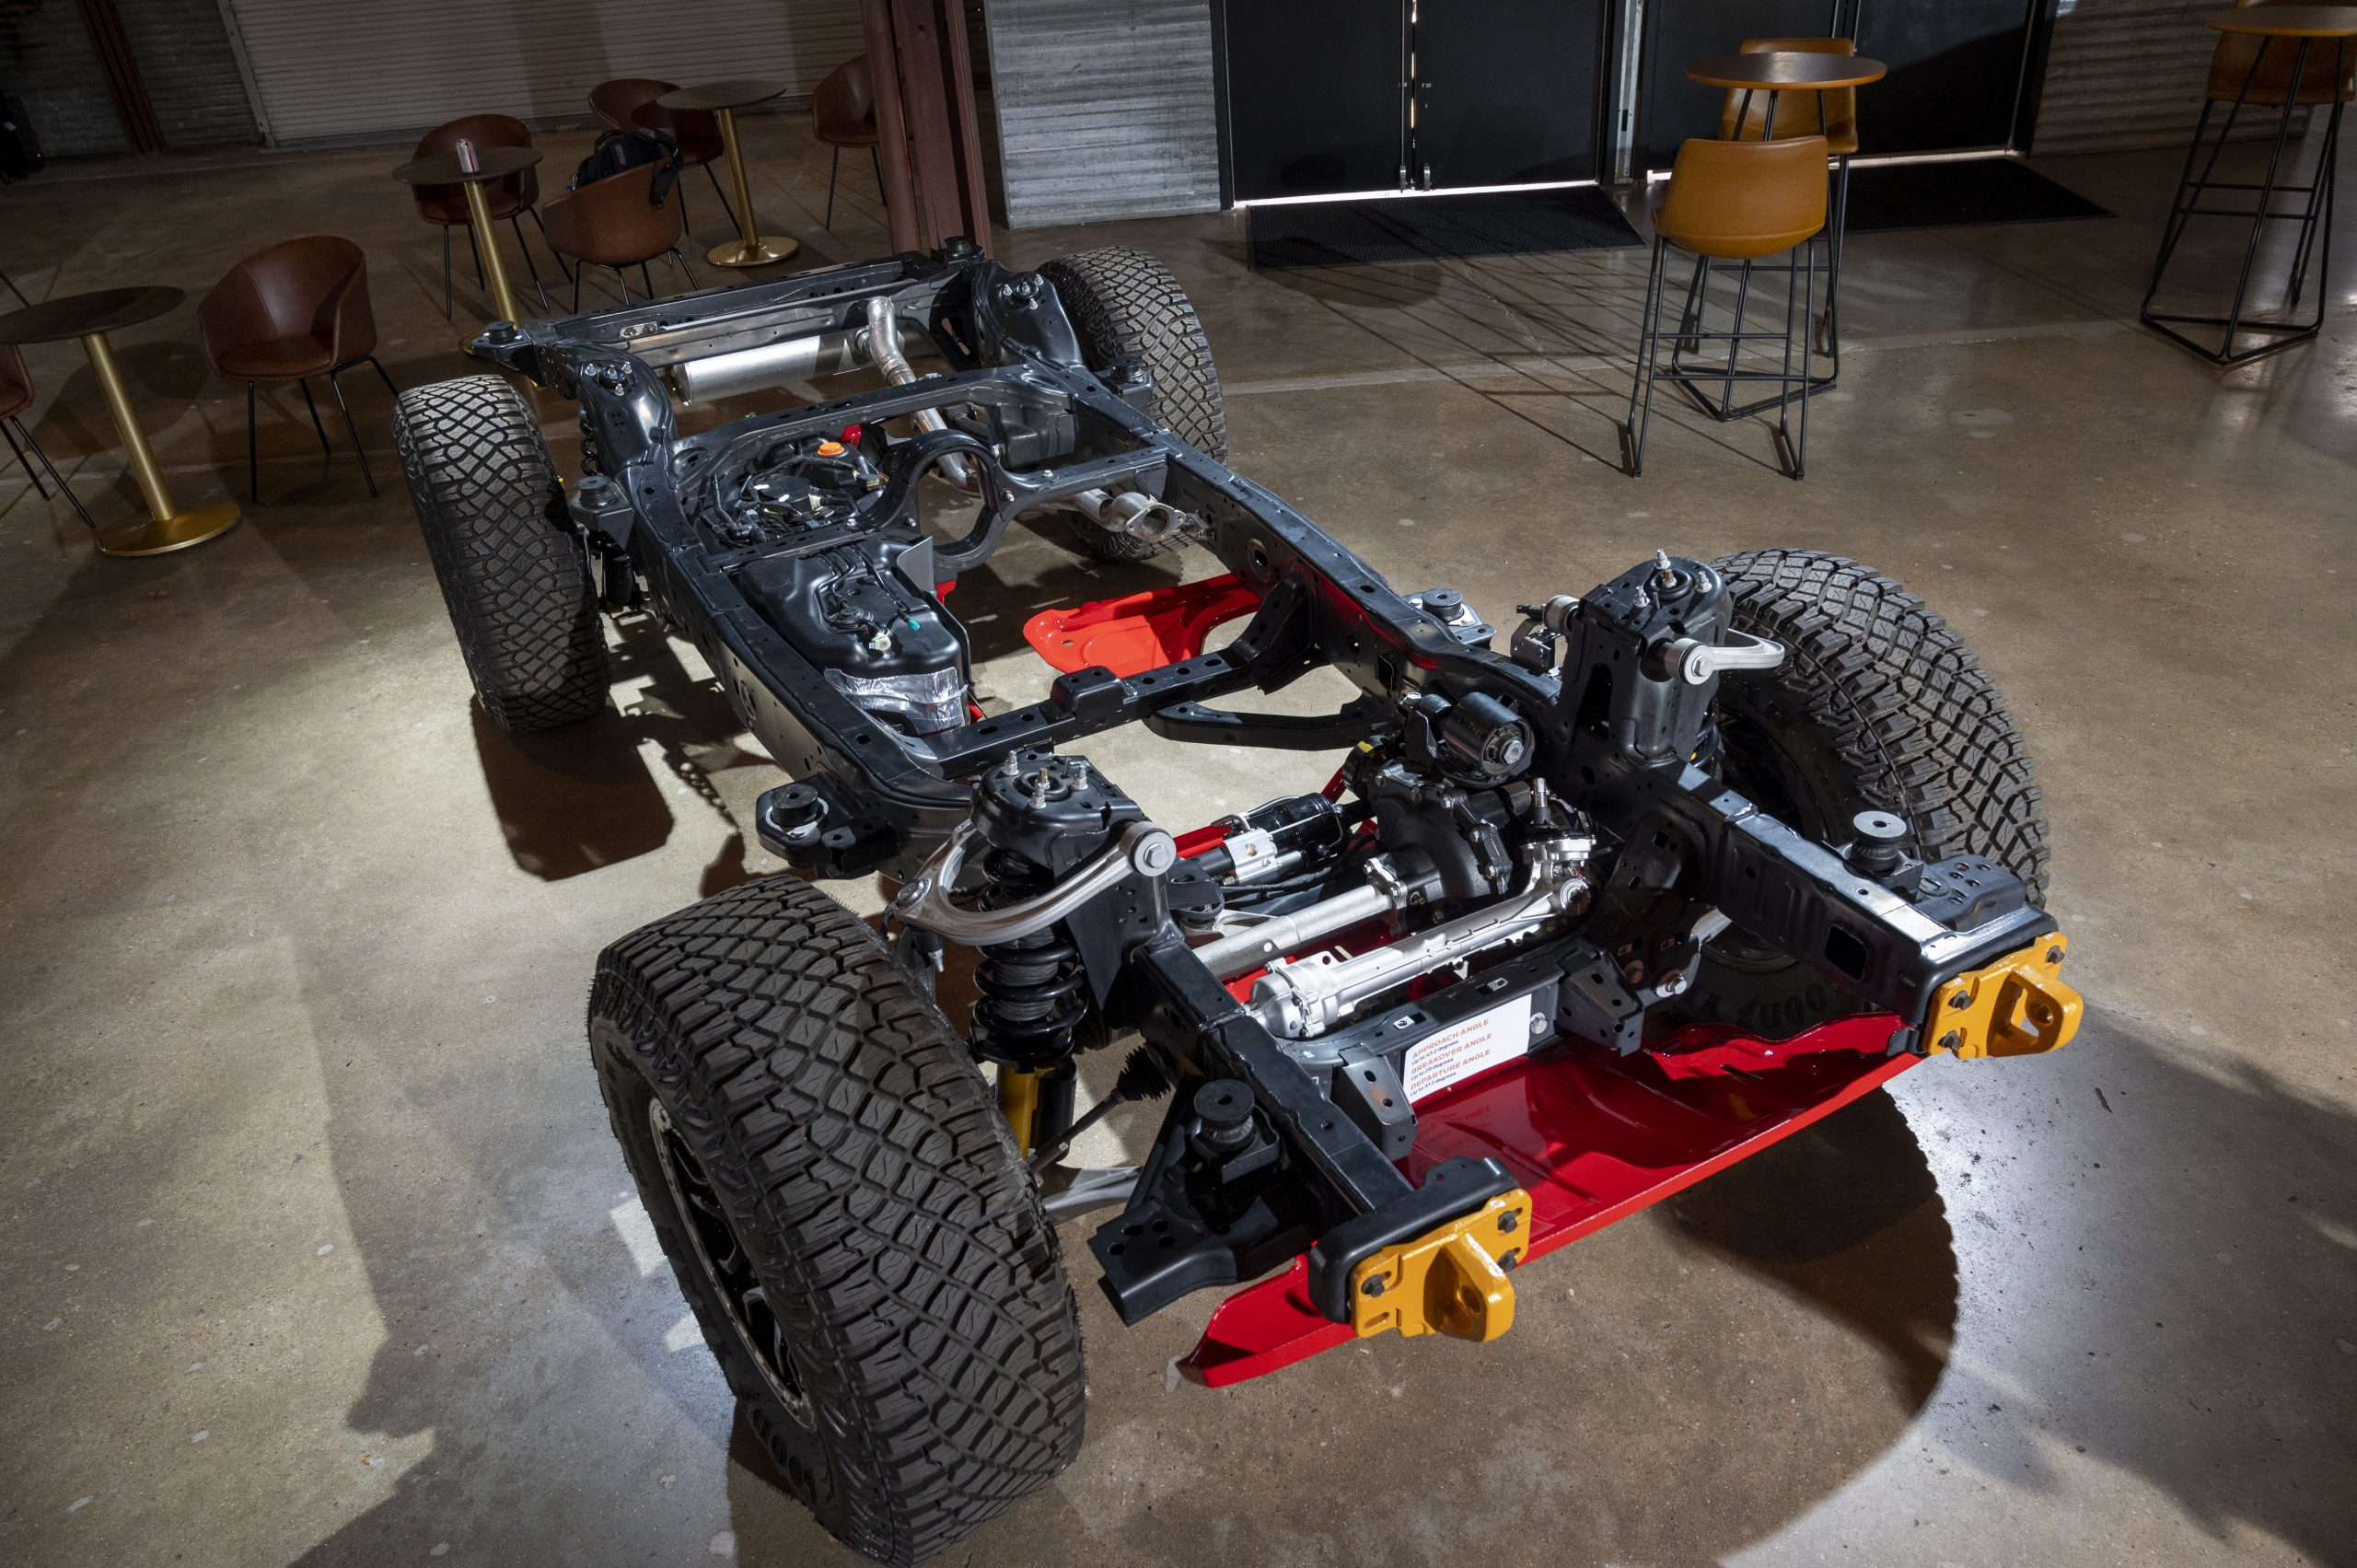 2021 Ford Bronco frame and chassis